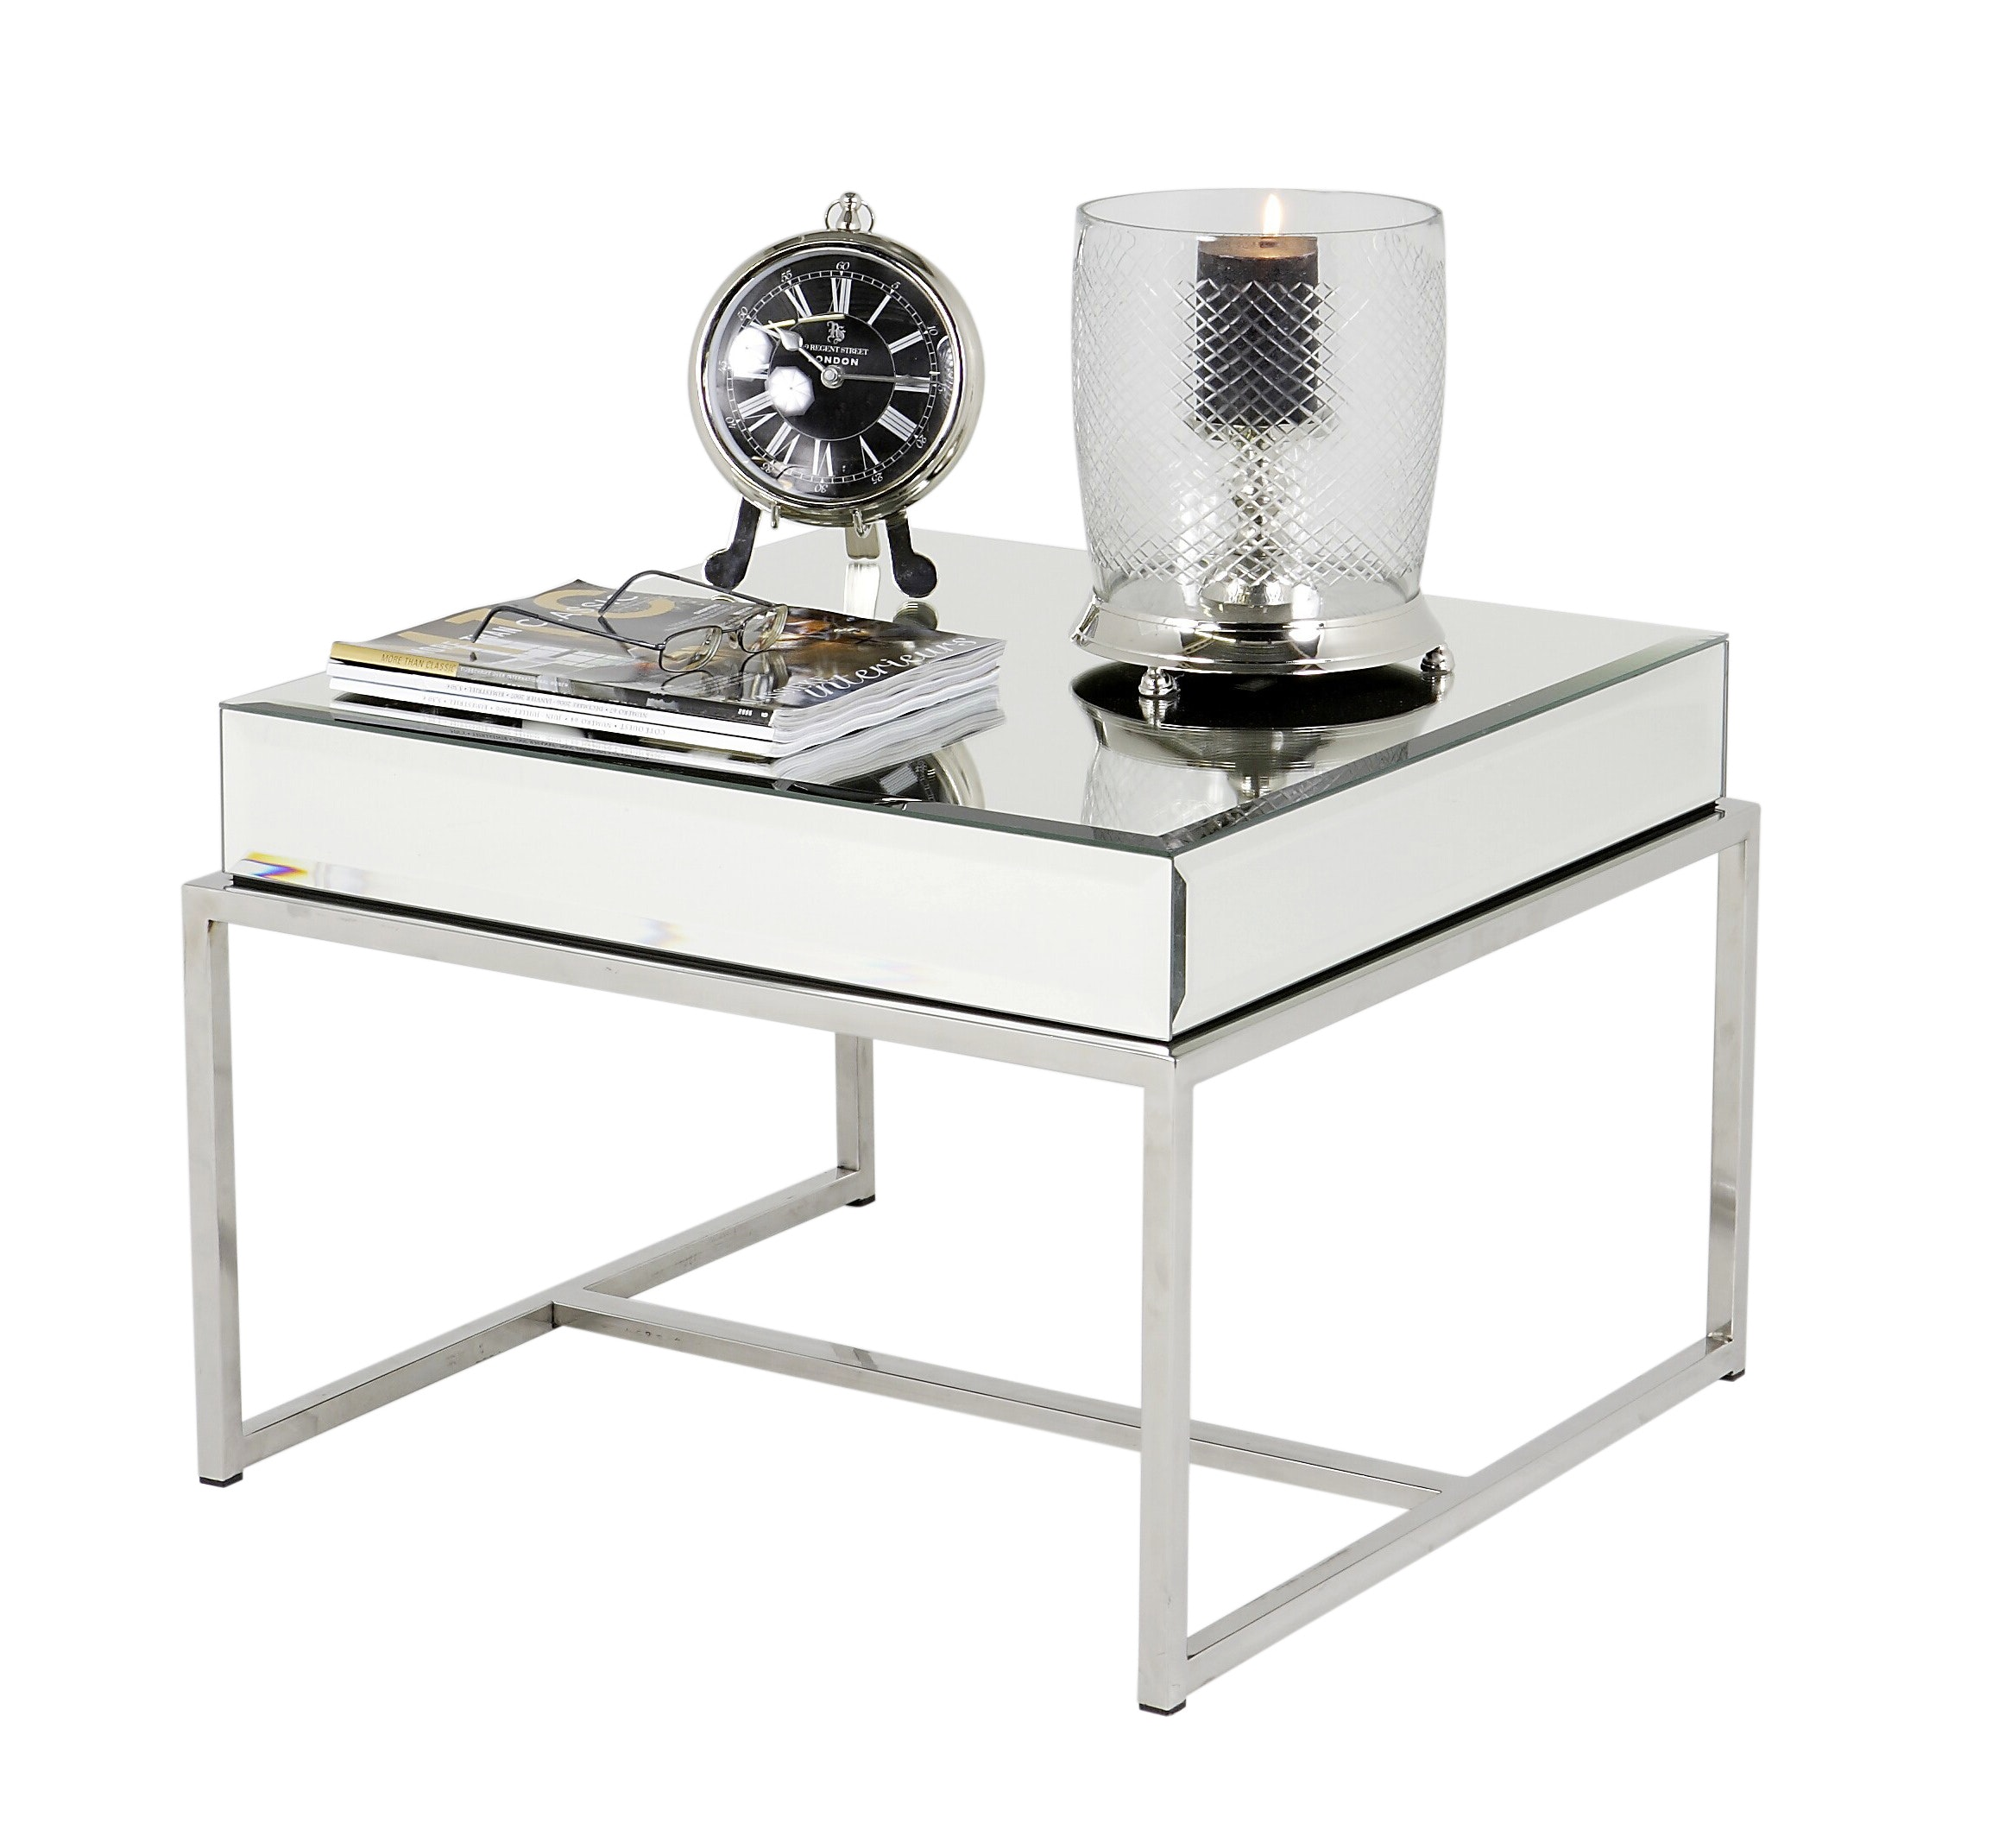 mirror side table contemporary transitional end tables michael dawkins home furniture metal modern glass dering hall unfinished wood dining kmart outdoor garden folding target